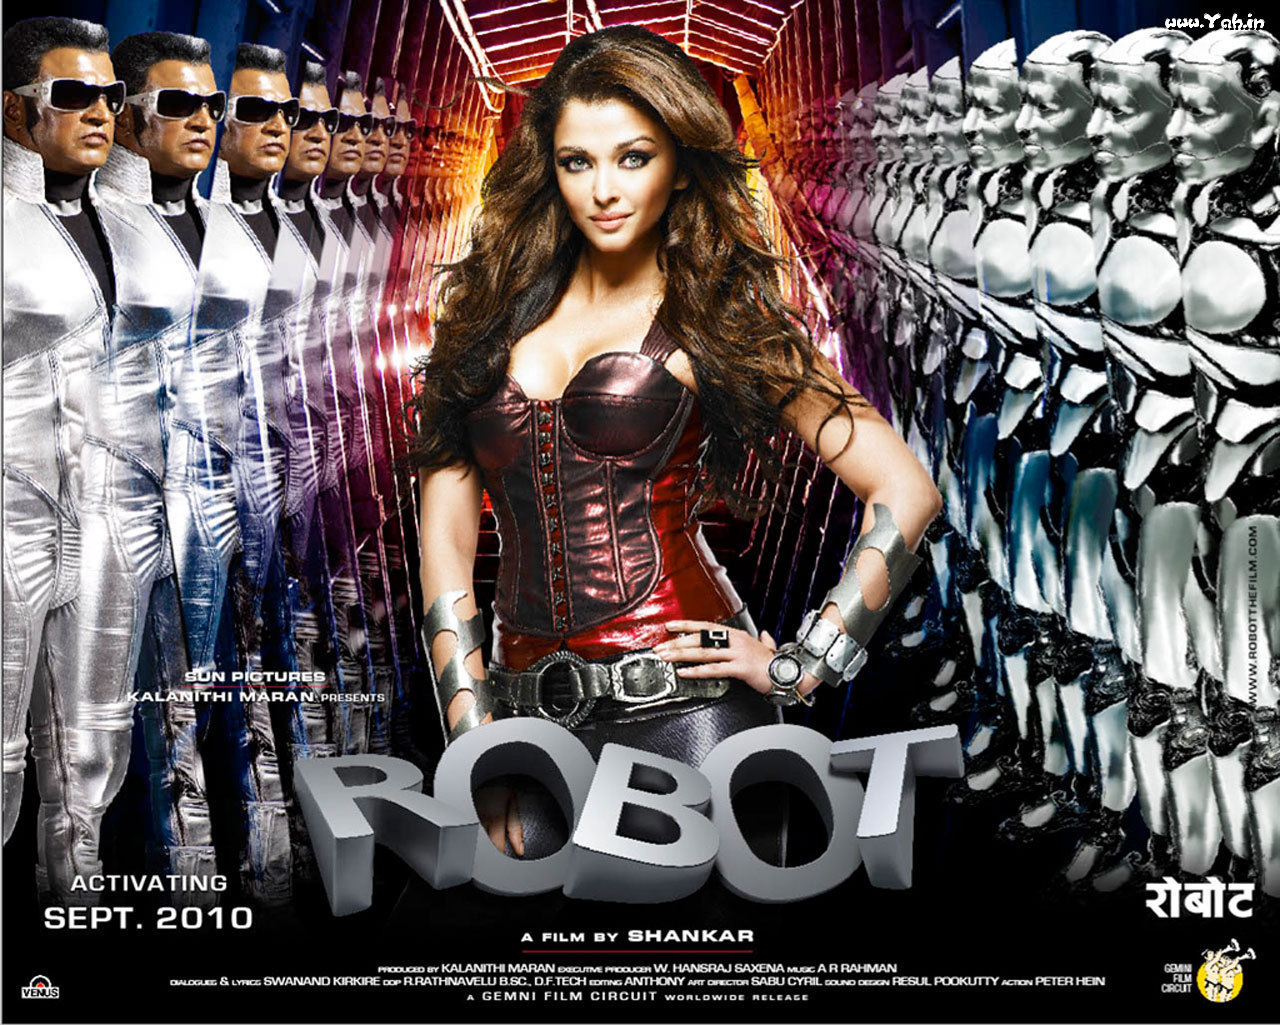 Robot movie bollywood